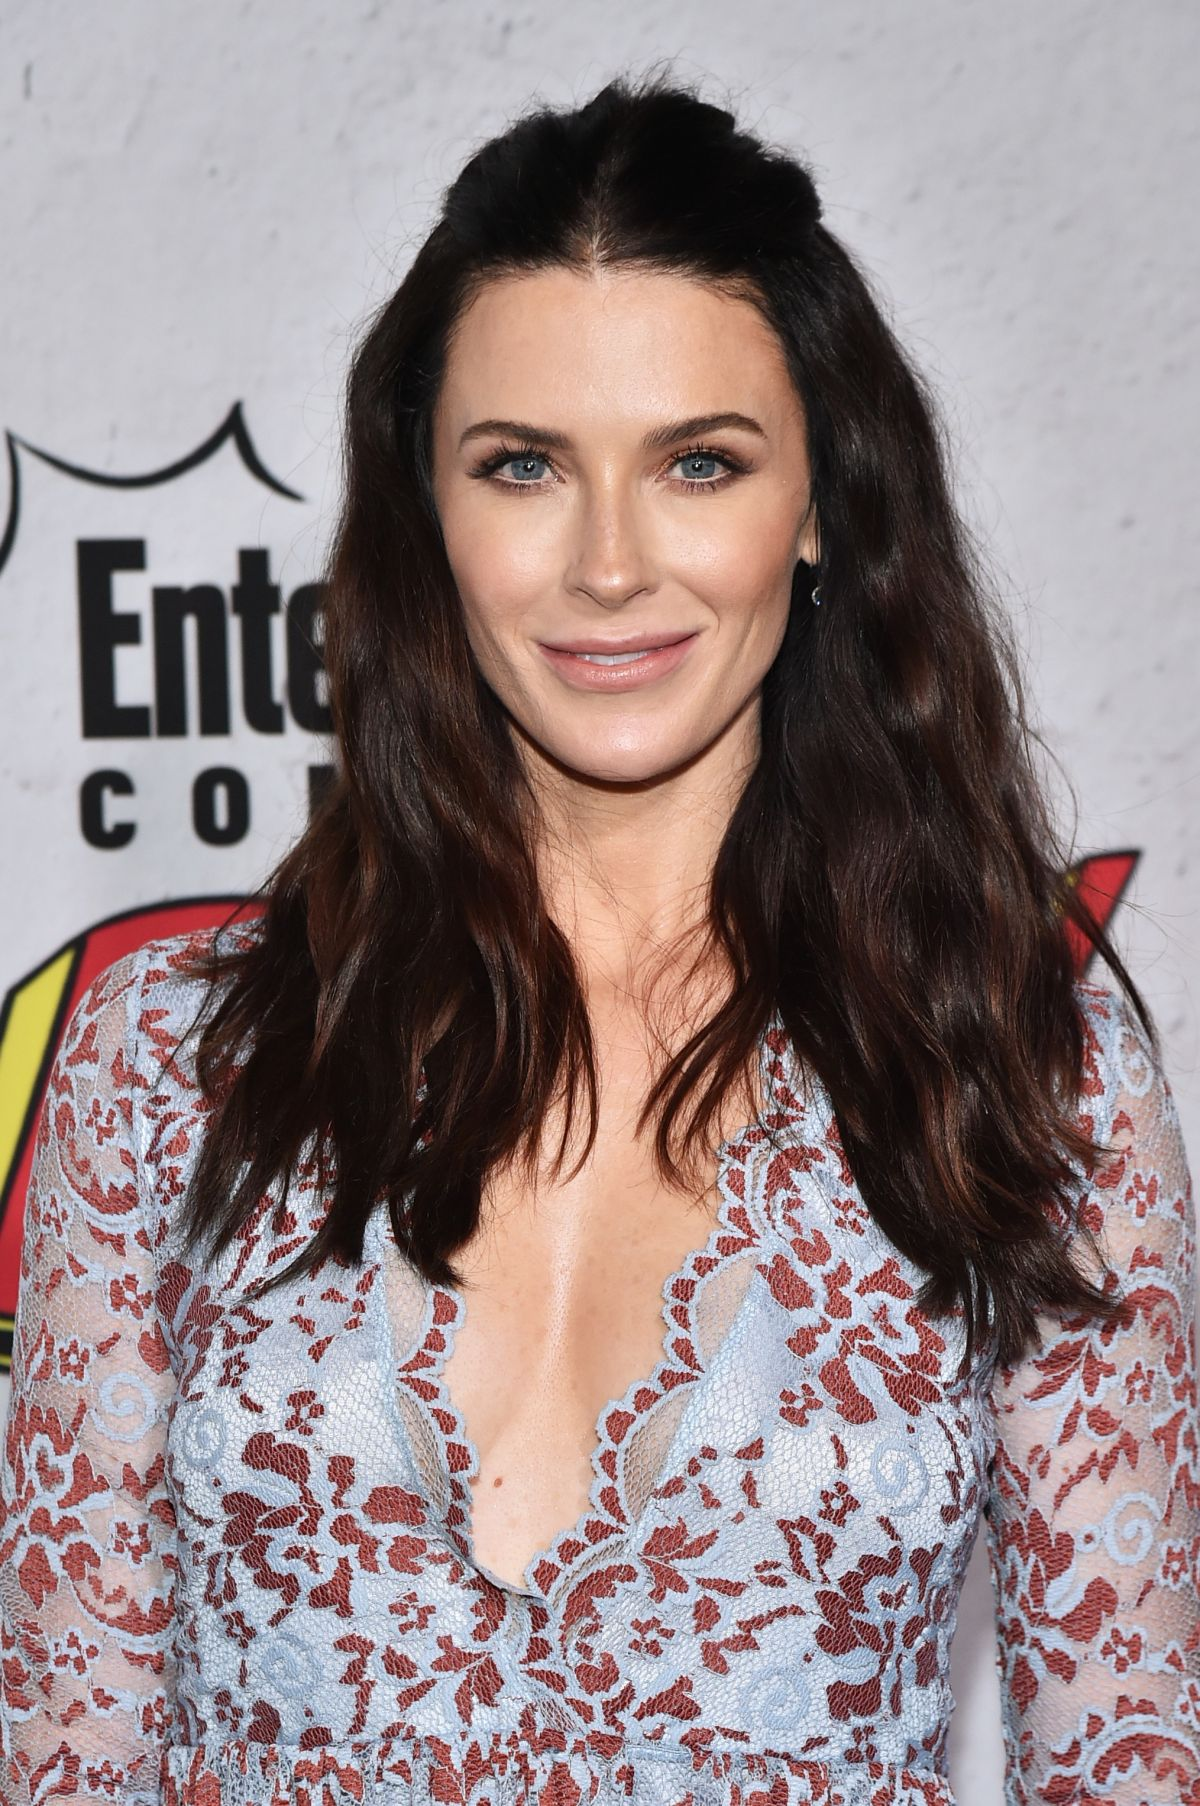 BRIDGET REGAN at Entertainment Weekly's Comic-con Party in San Diego 07/22/2017